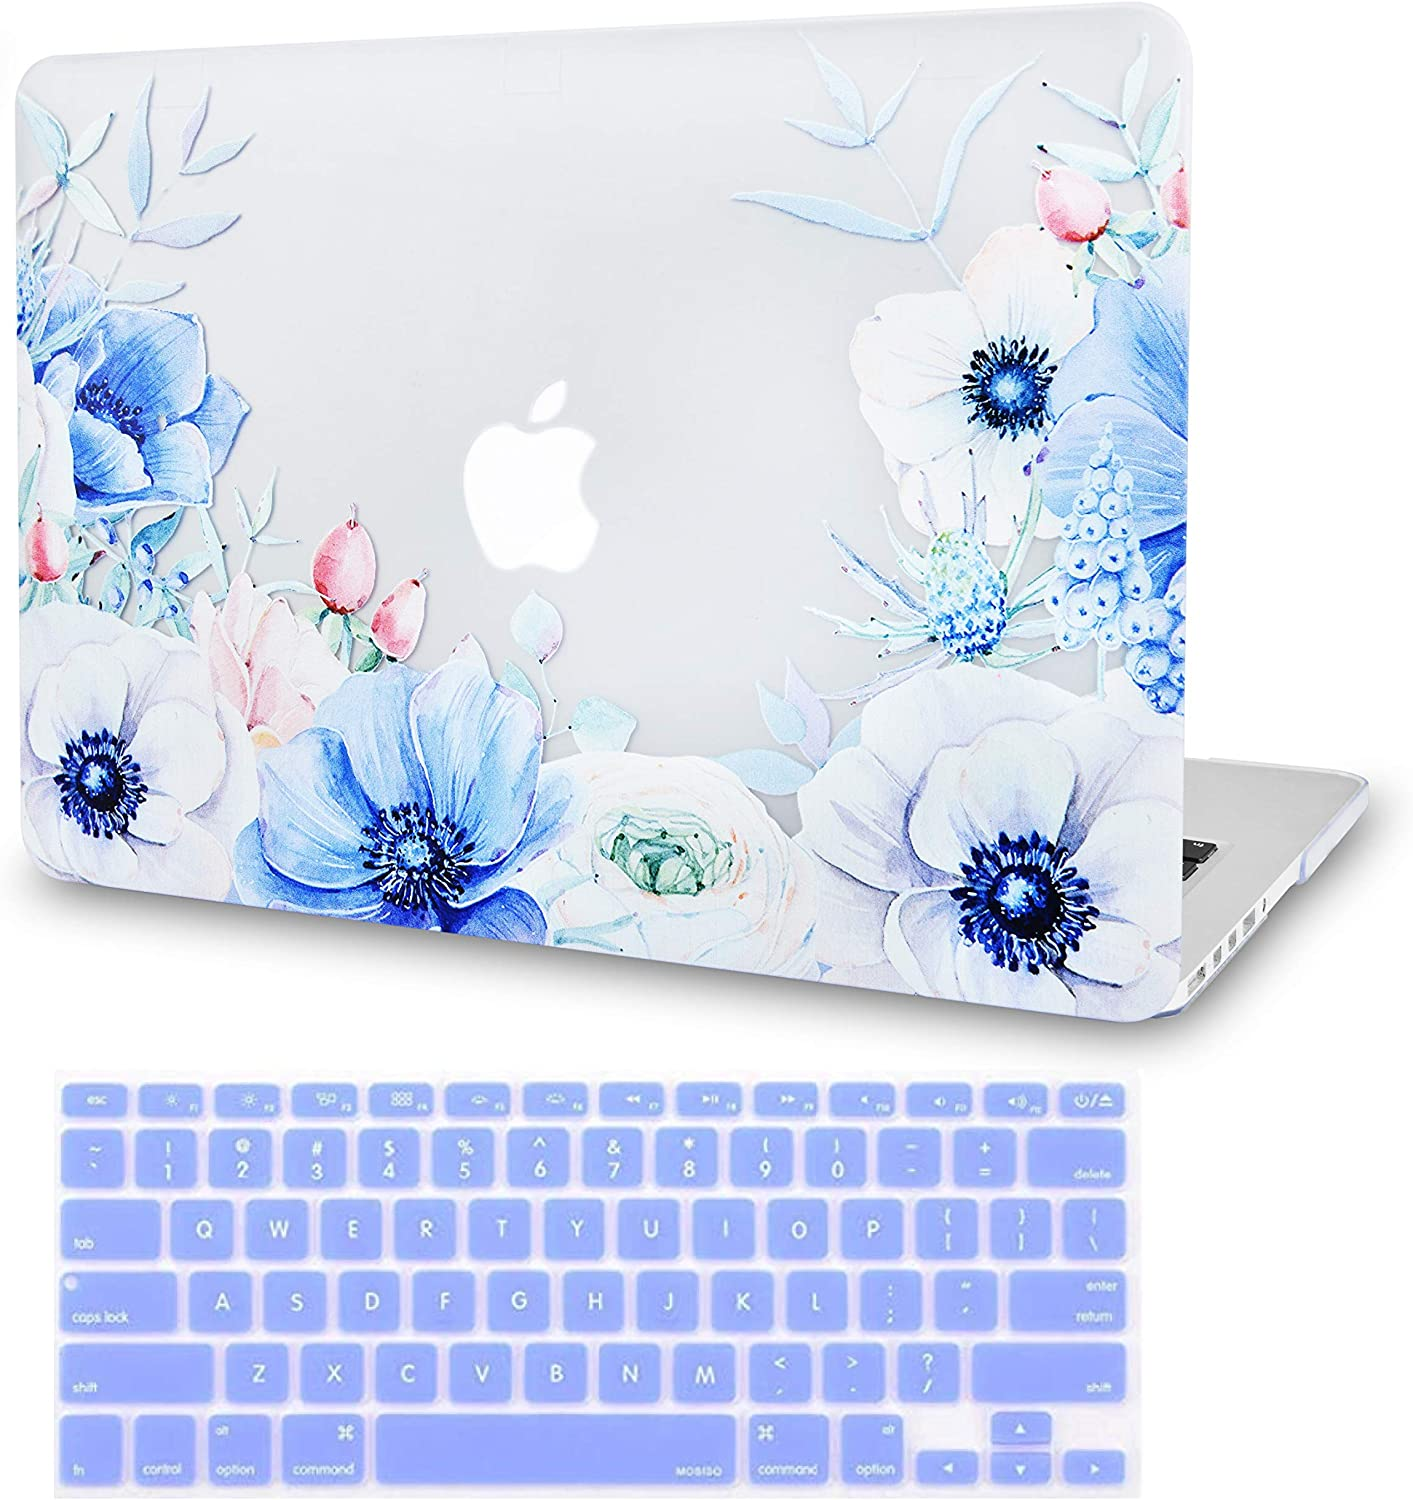 LuvCase2in1Laptop Case Compatible with MacBookAir 13 Inch (2010-2017) A1466/A1369 (No Touch ID)RubberizedPlasticHardShellCover &KeyboardCover (Blue and White Poppy)